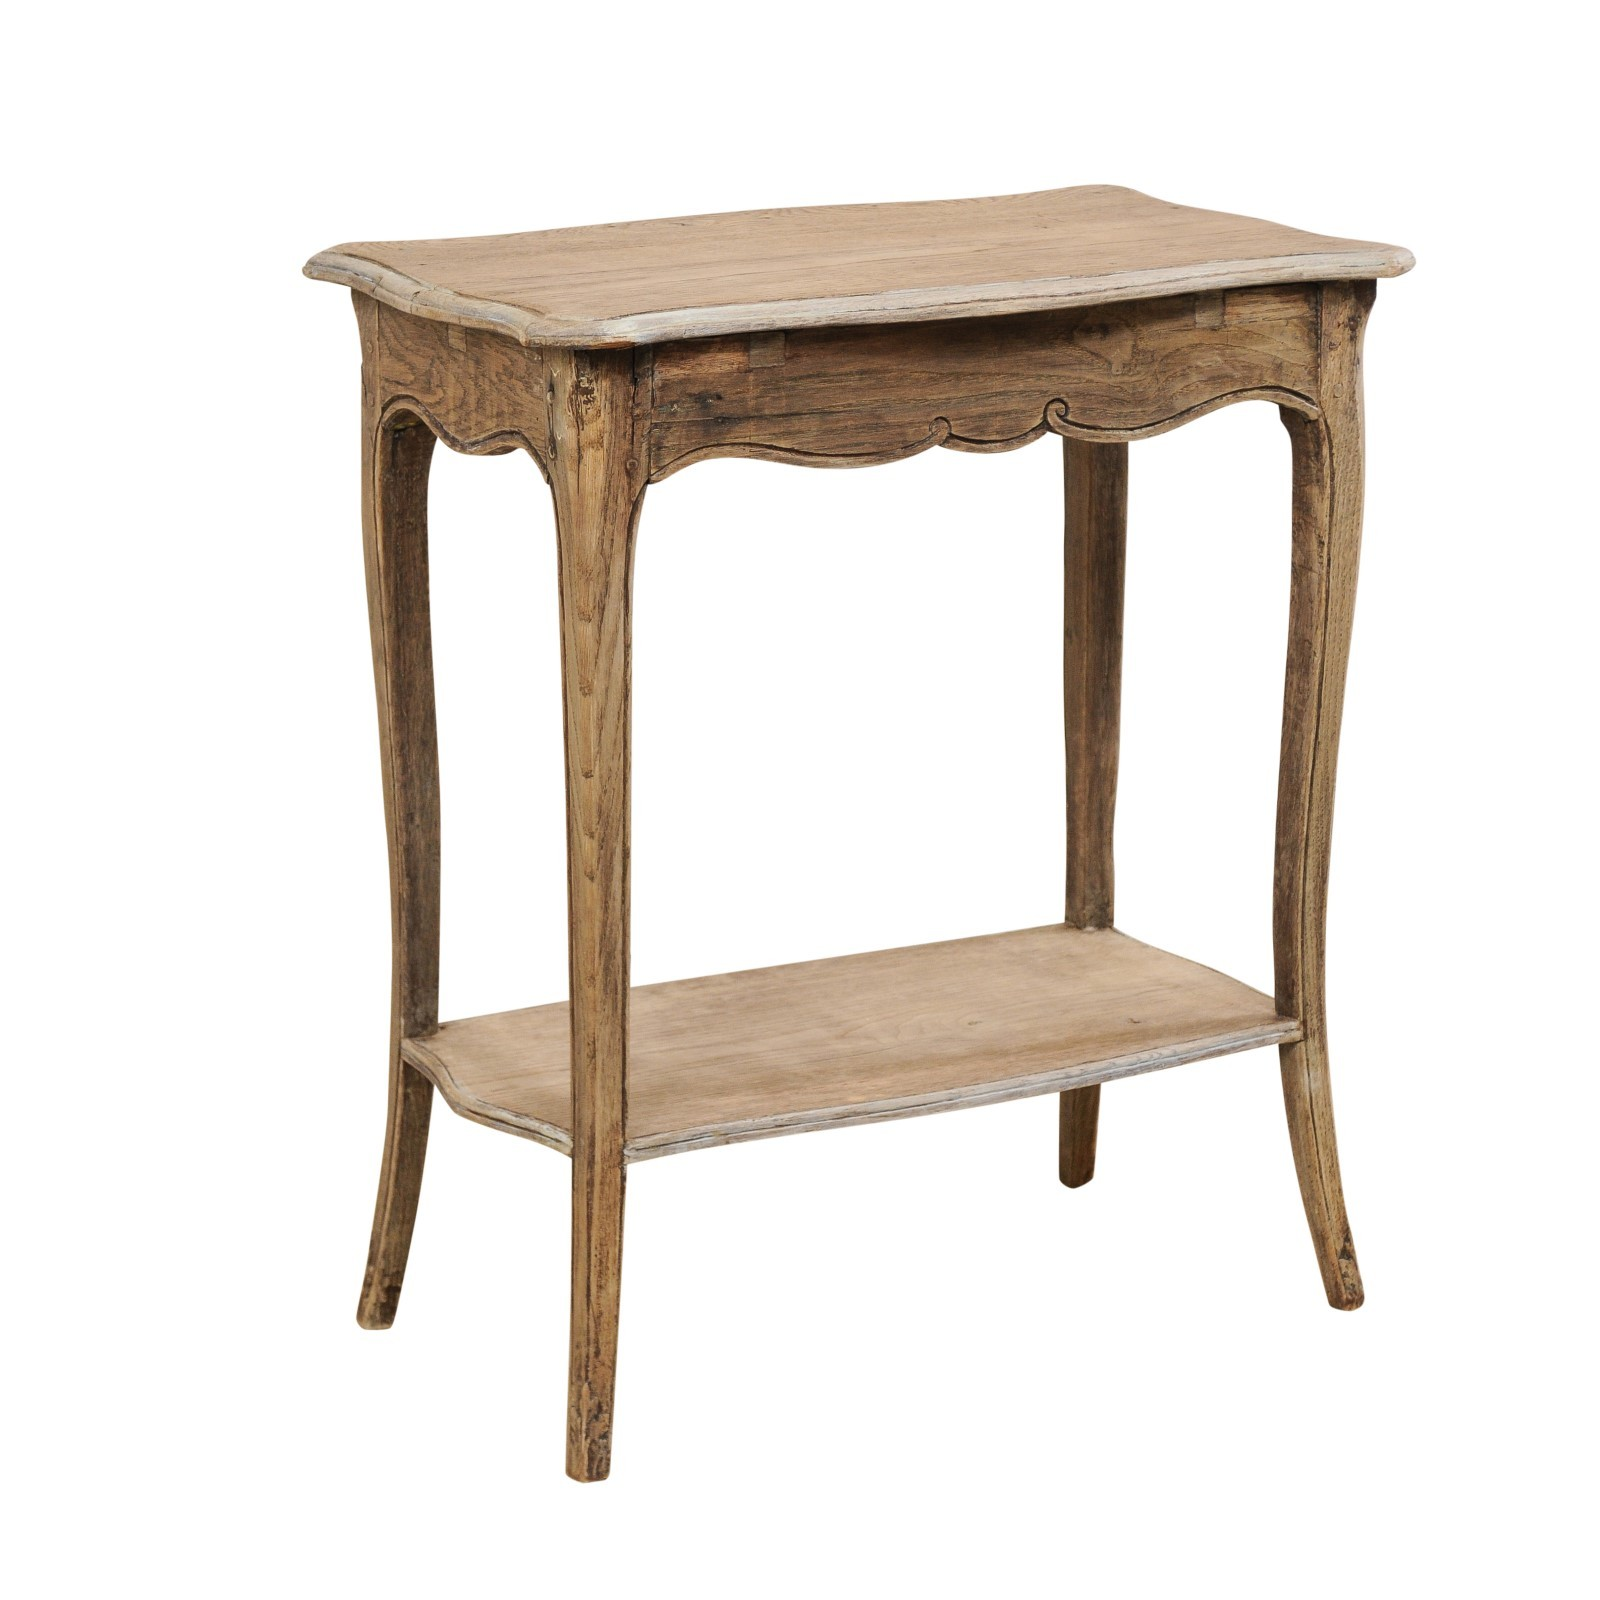 18th C. French Side Table w/Lower Shelf